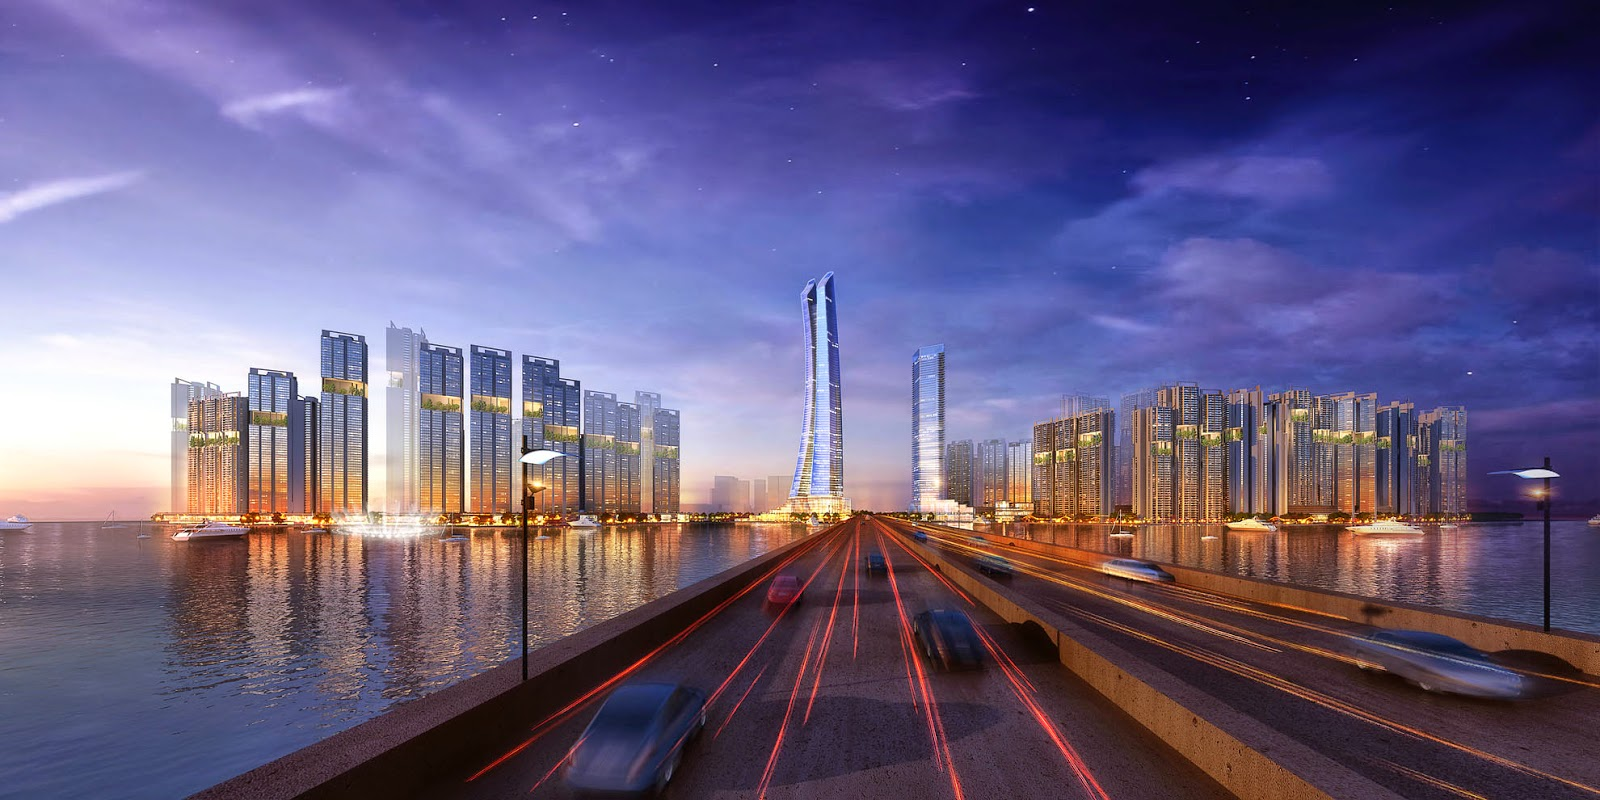 Artist impression of the Super Tower in Bangkok